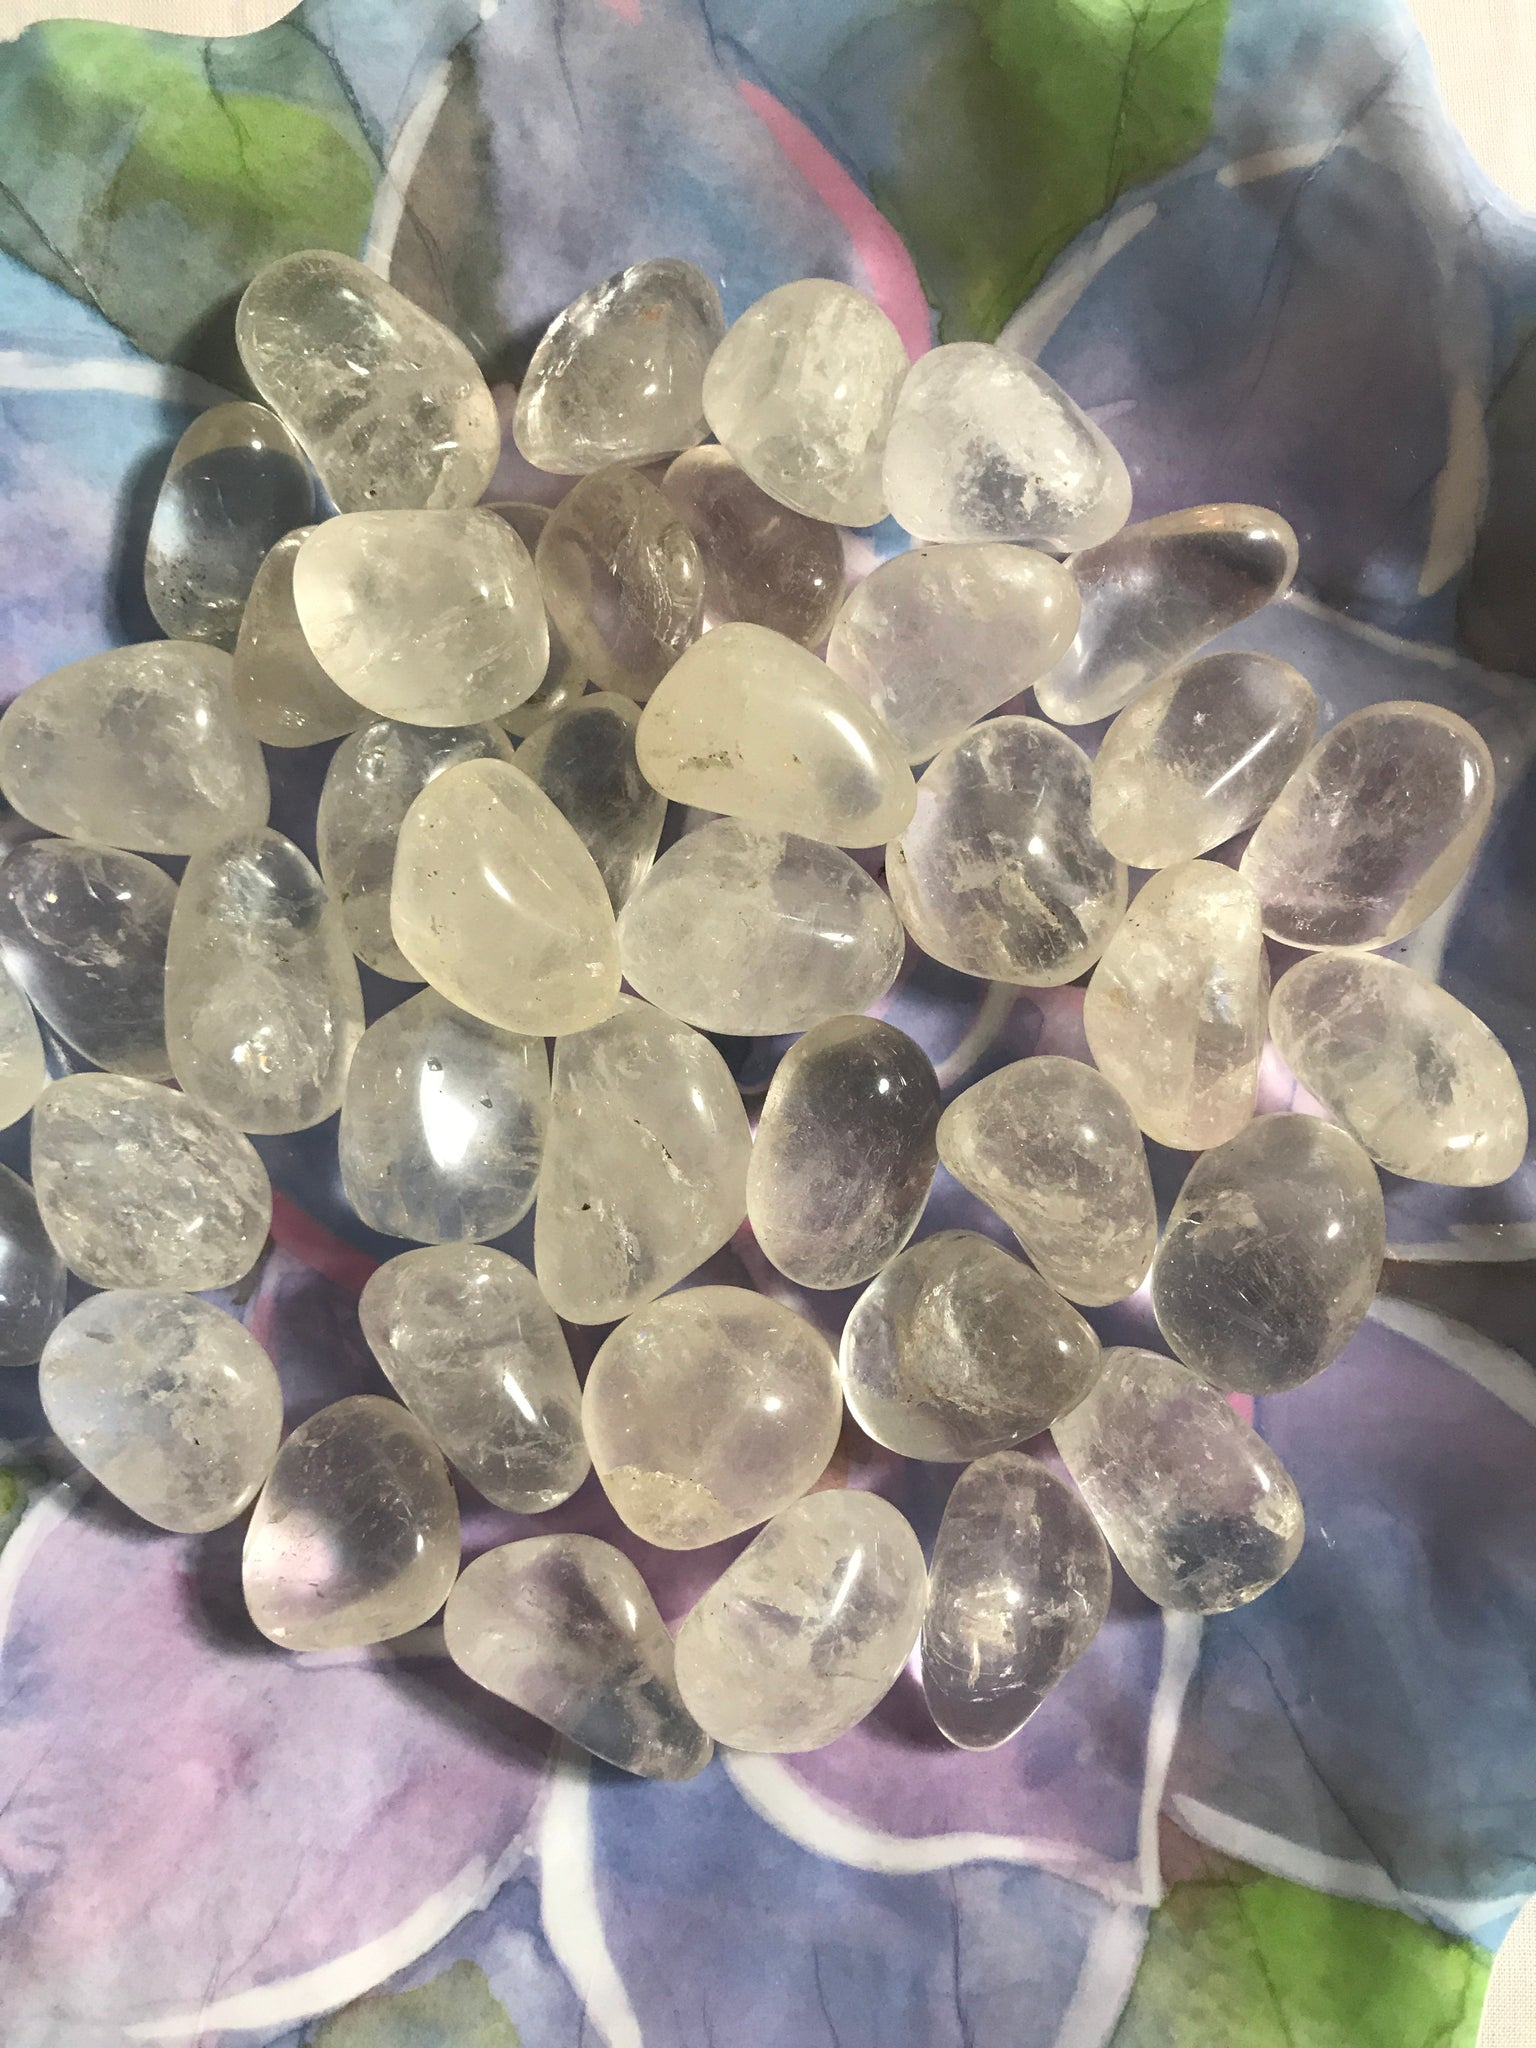 unicornsquare - Clear Quartz Tumbled Crystal - Crystal